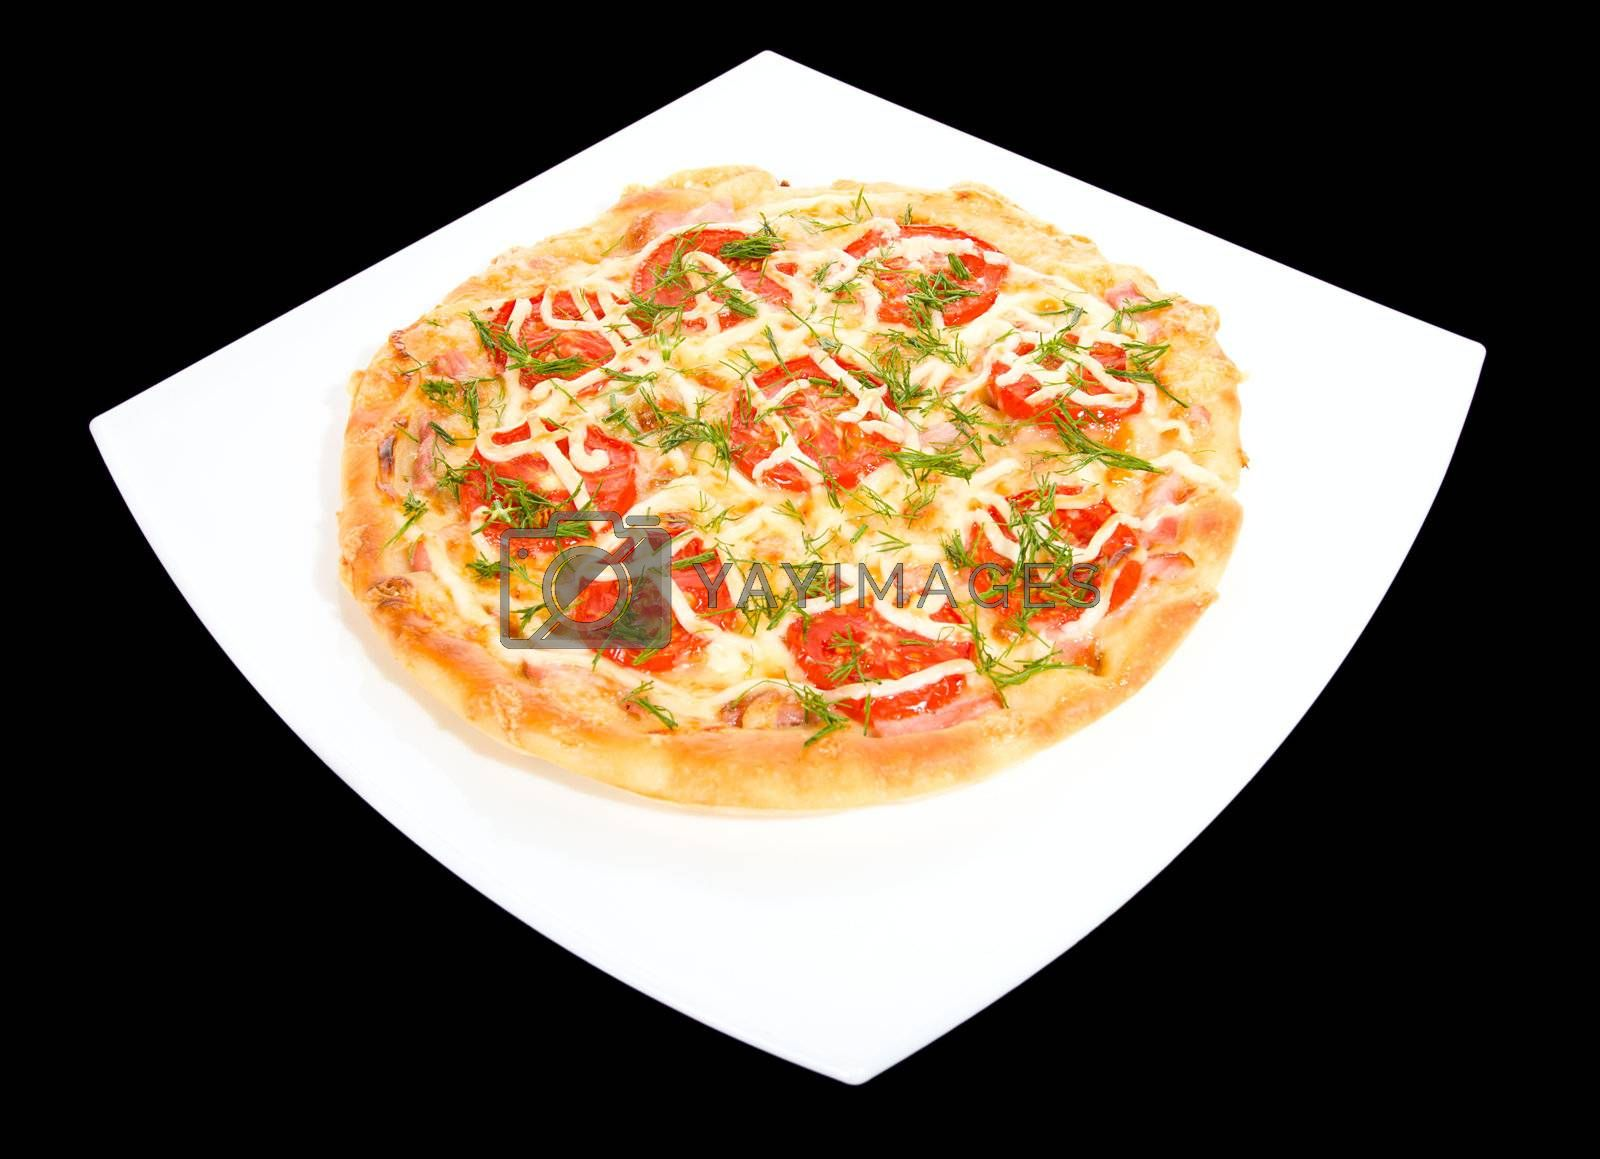 round pizza on square plate, isolated over black background